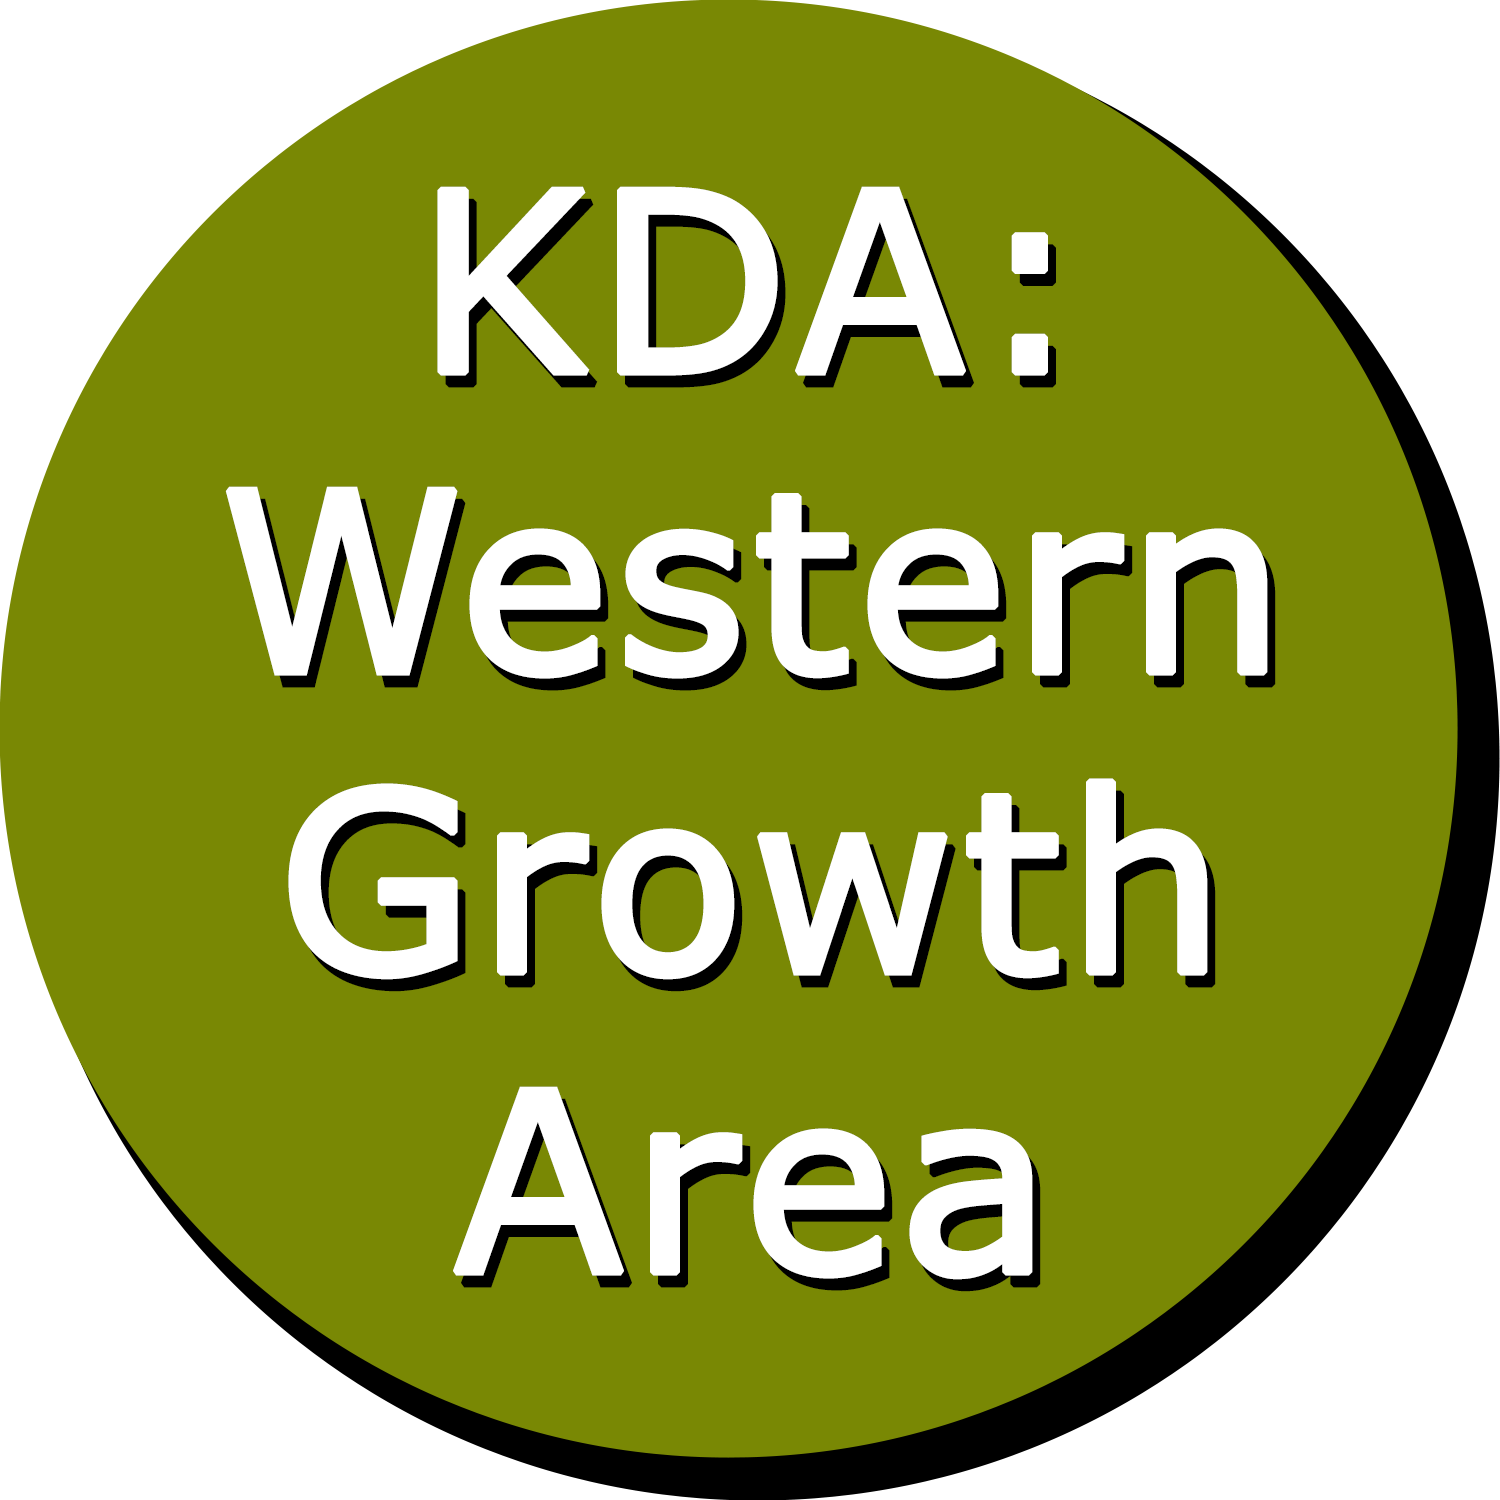 Western Growth Area